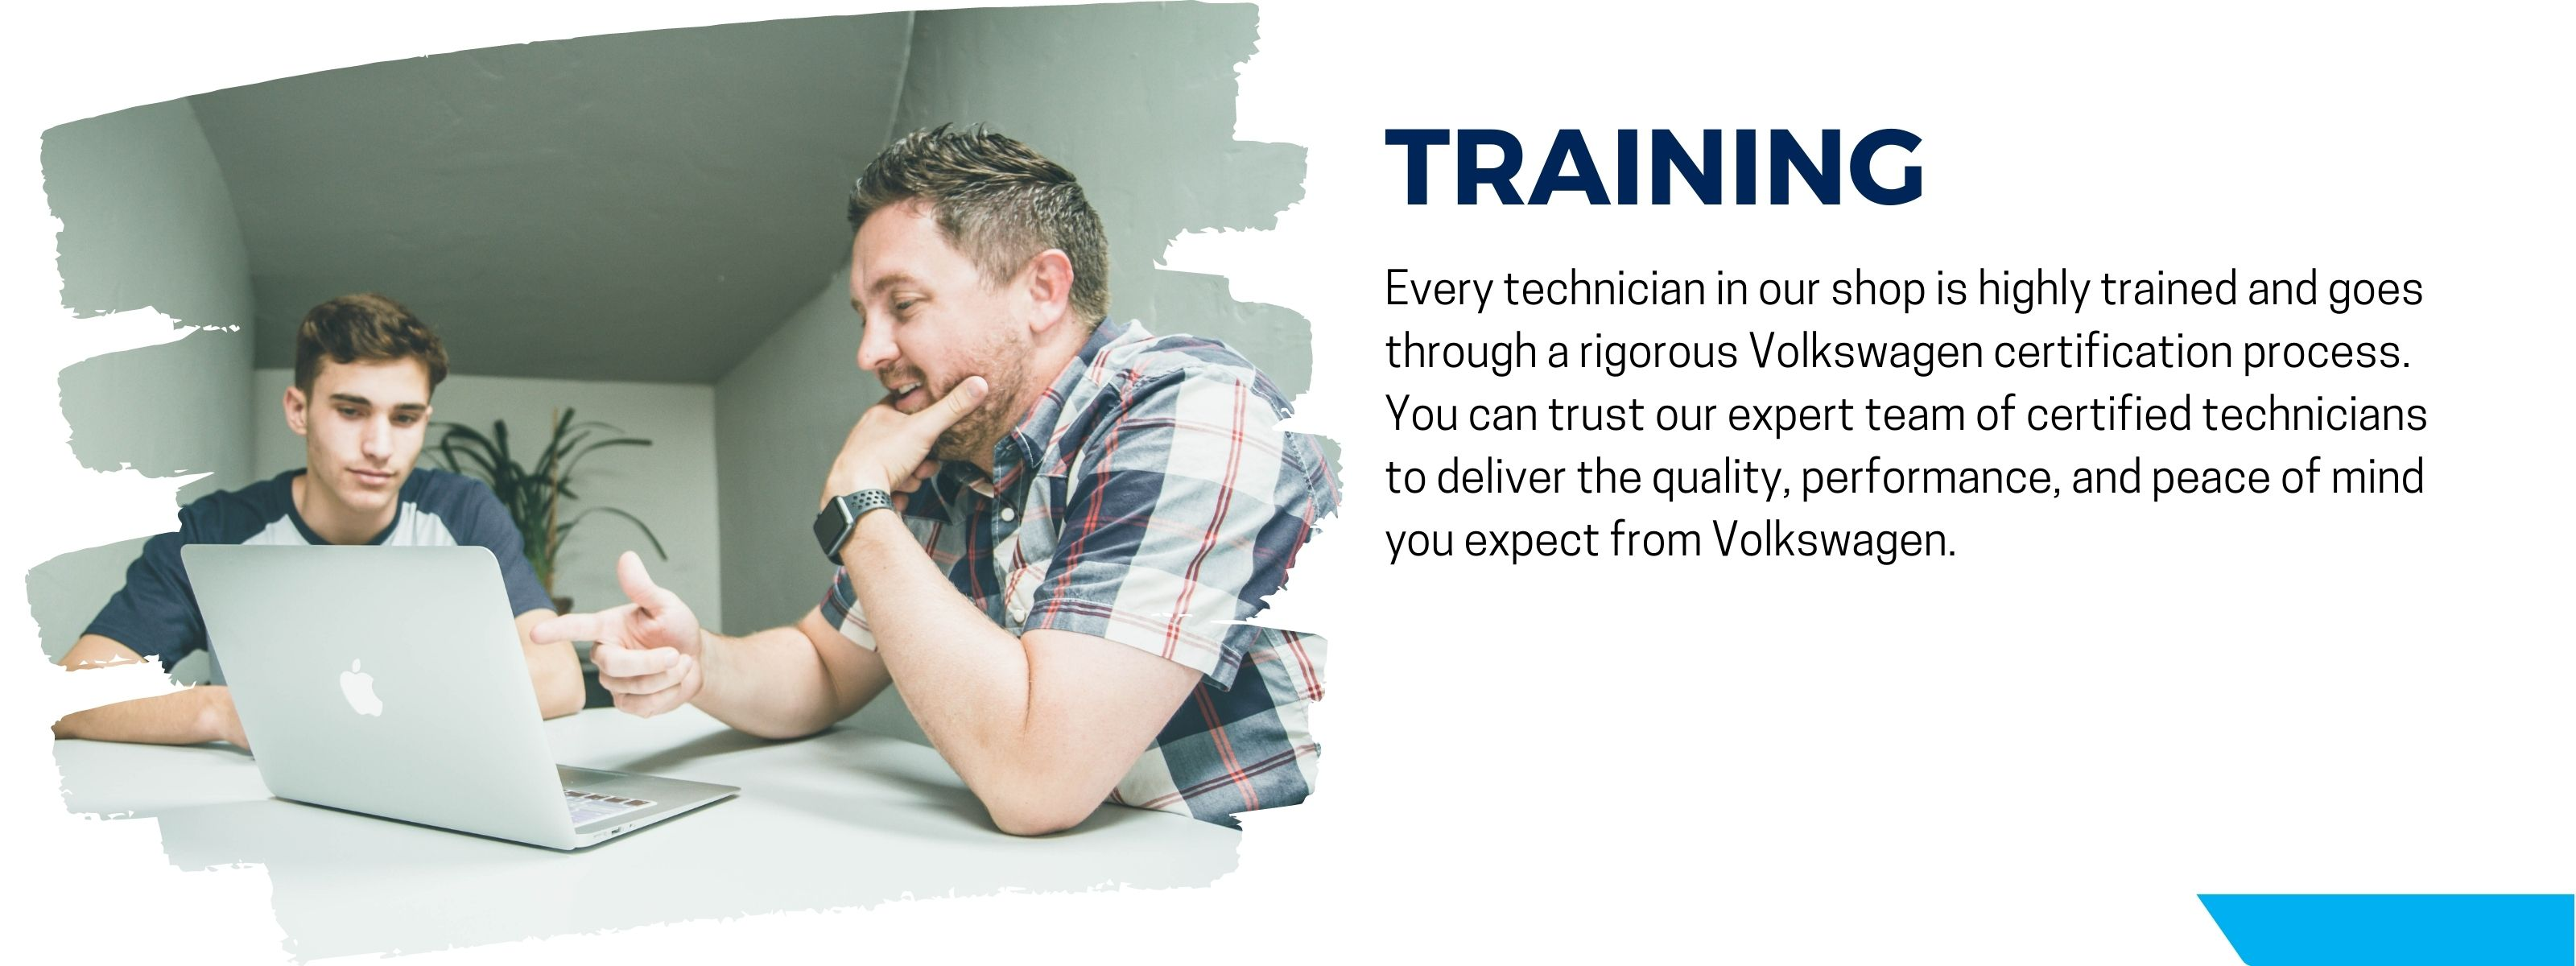 our technicians go through extensive training to make sure they know your VW